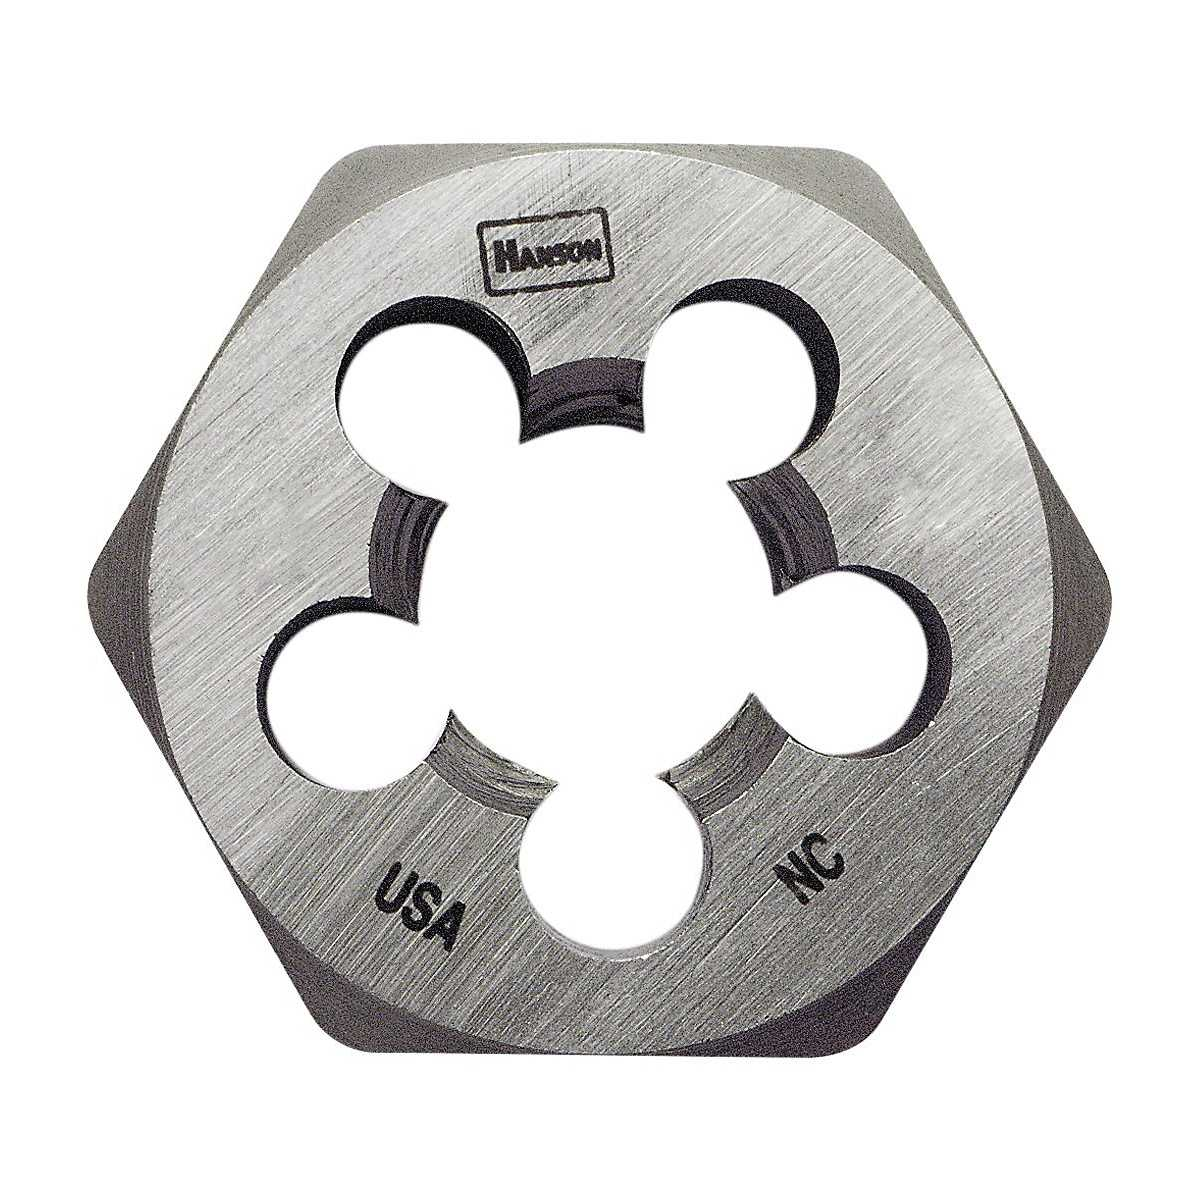 HCS Hex 1-13/16in. Across Flat Die 22MM-1.50